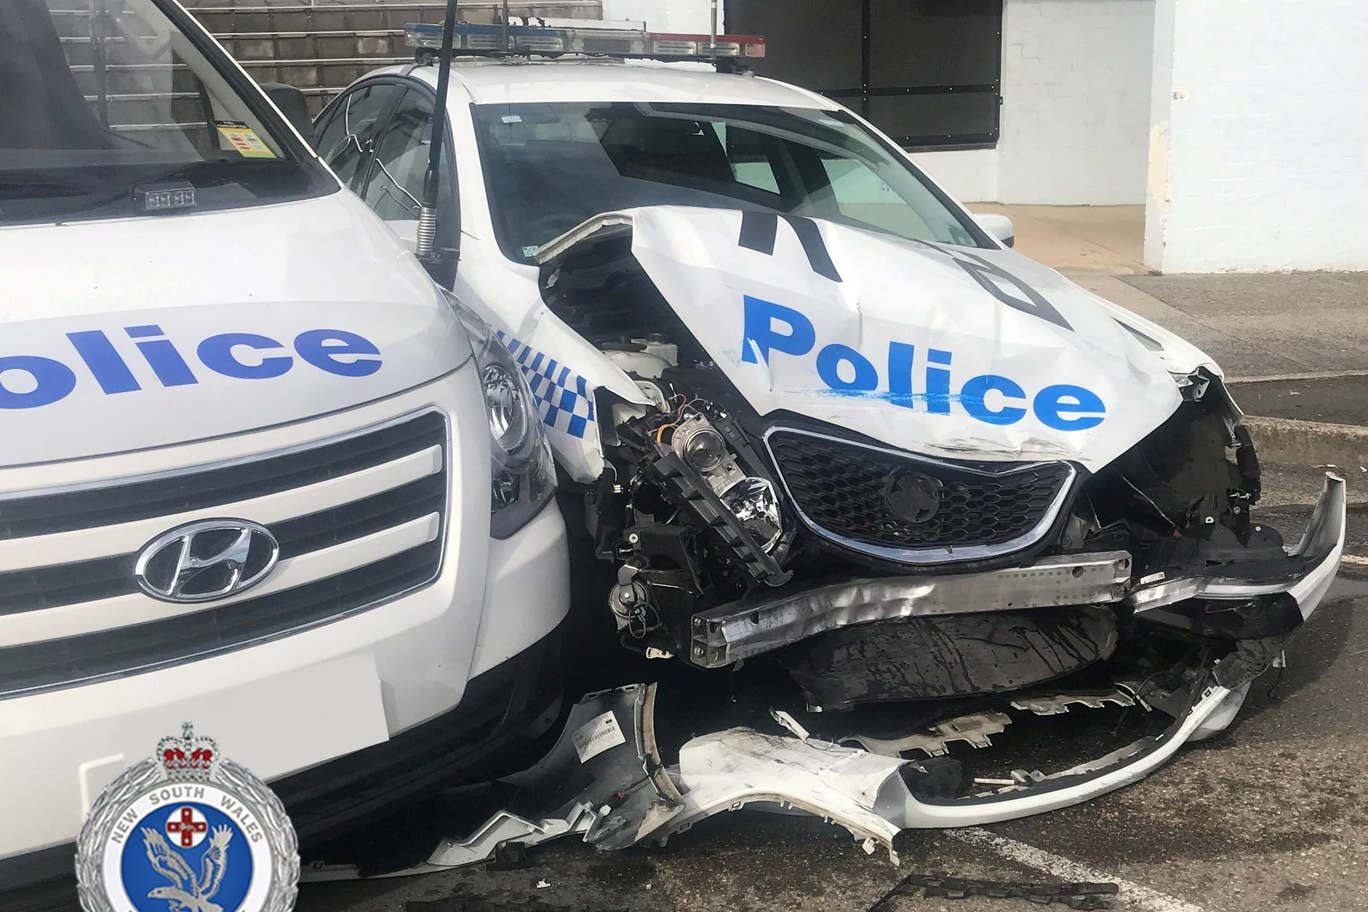 rams into police vehicle while carrying methamphetamine